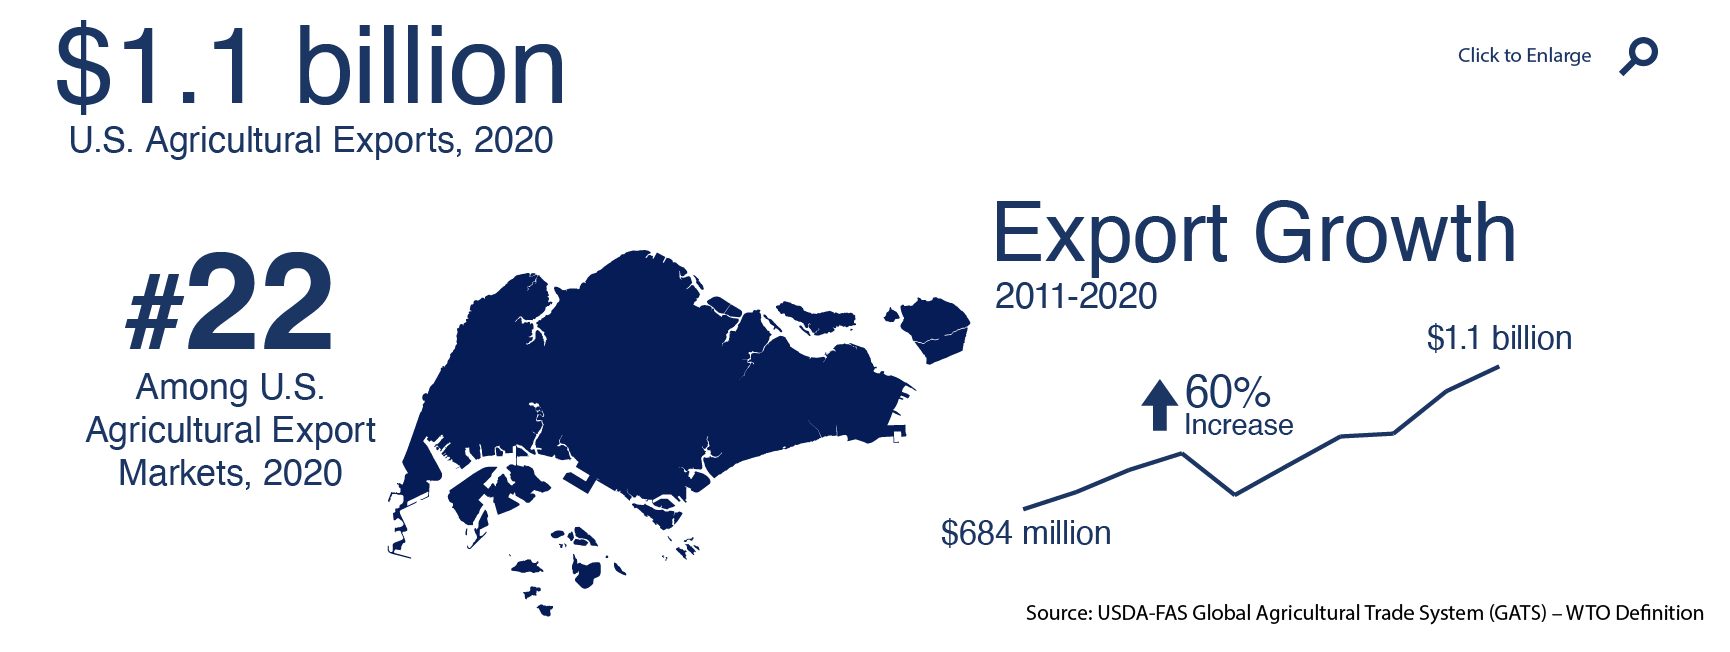 Infographic showing U.S. agricultural exports to Singapore in 2020